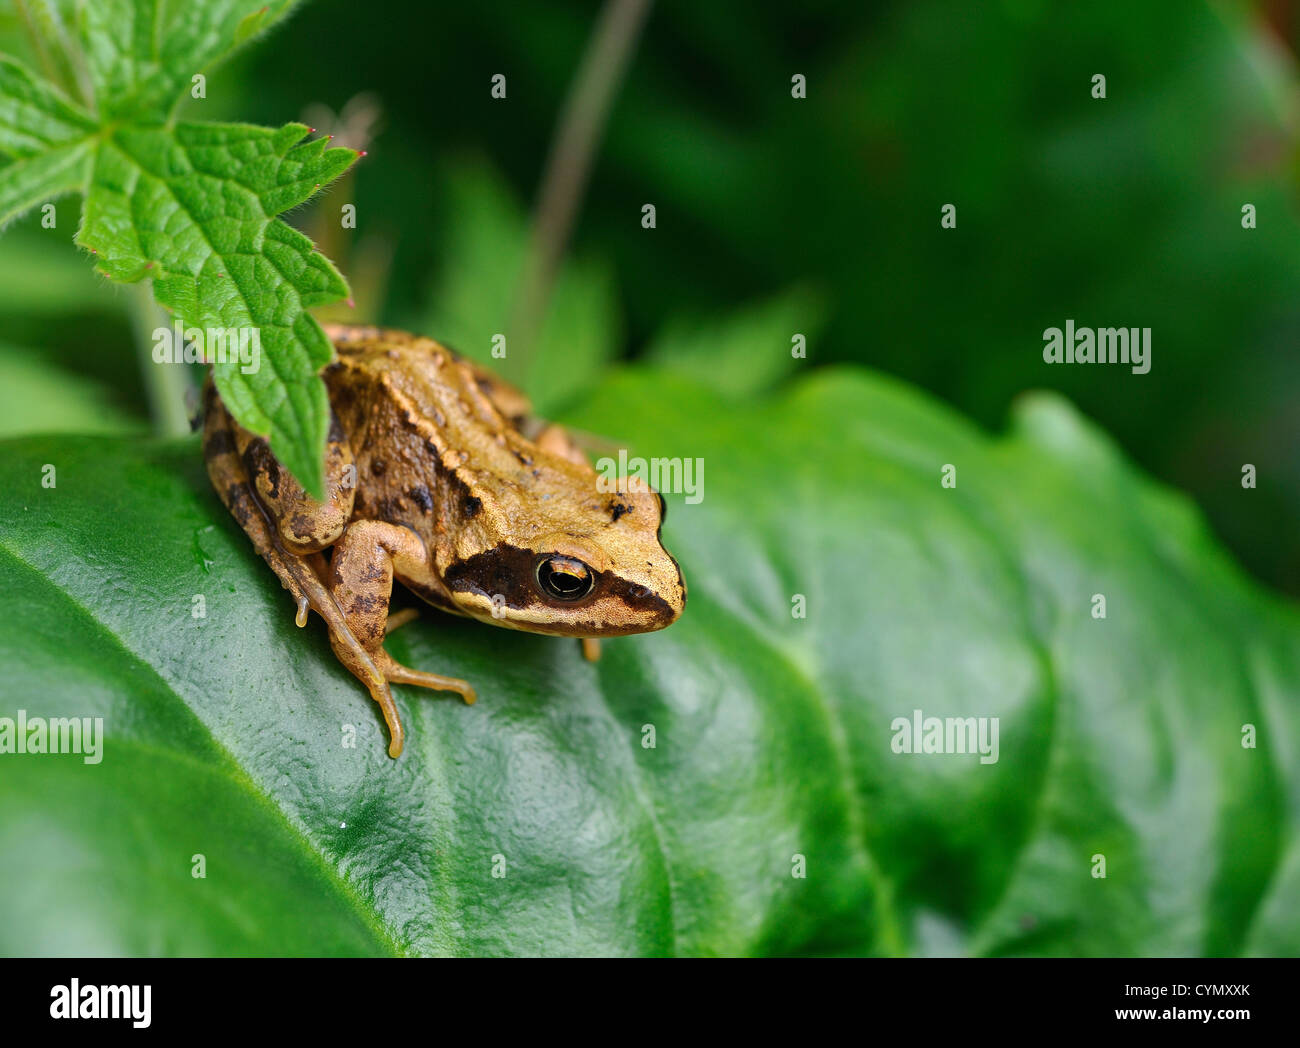 Juvenile common frog Rana temporaria on leaves of elephant-ear - Stock Image